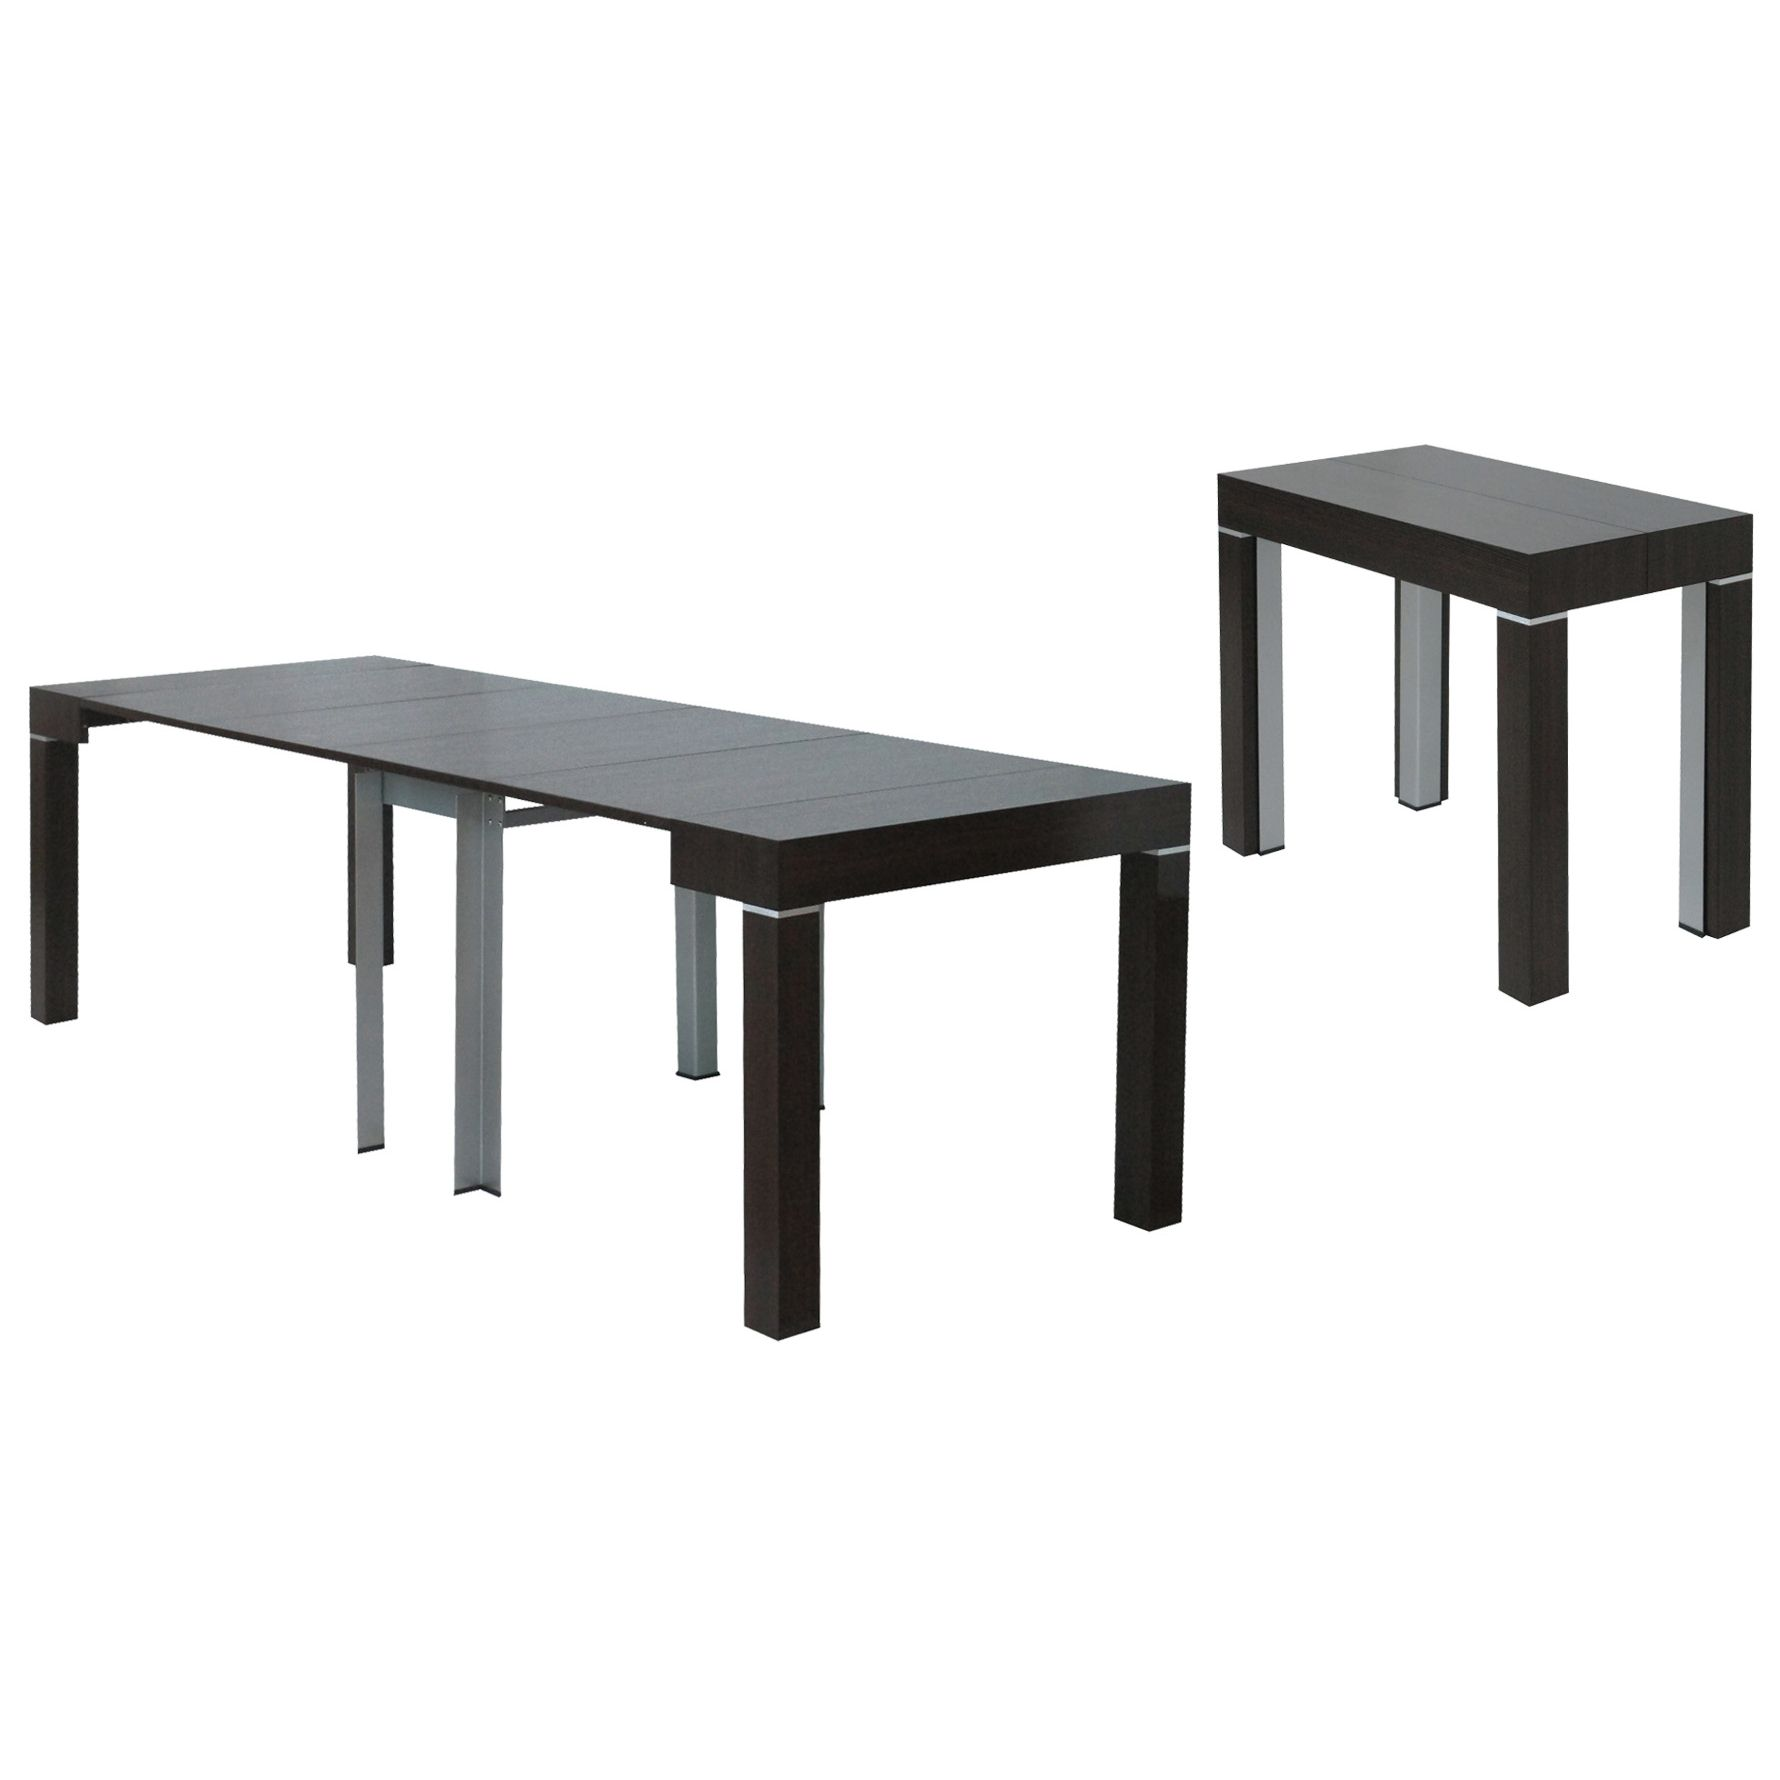 Deco in paris table console extensible wenge avec 4 - Table console extensible personnes ...